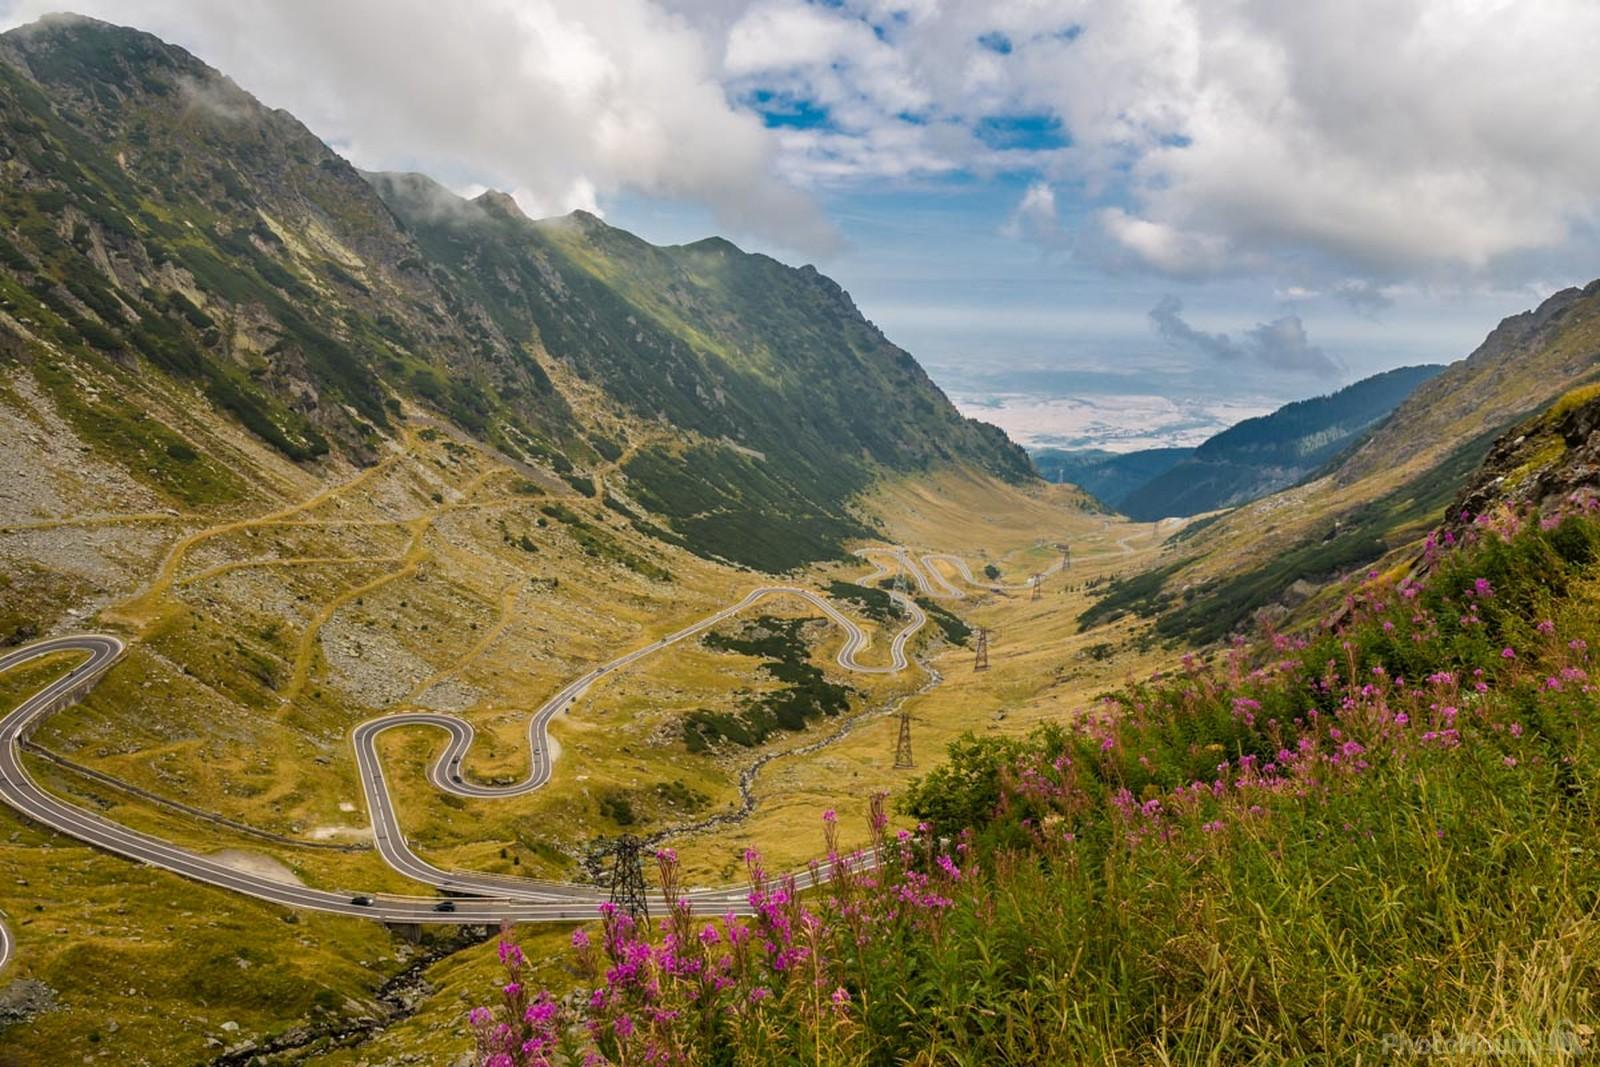 The famous Transfagarasan Highway is the most beautiful road in Romania crossing the Transylvanian Alps (Carpathian Mountains).